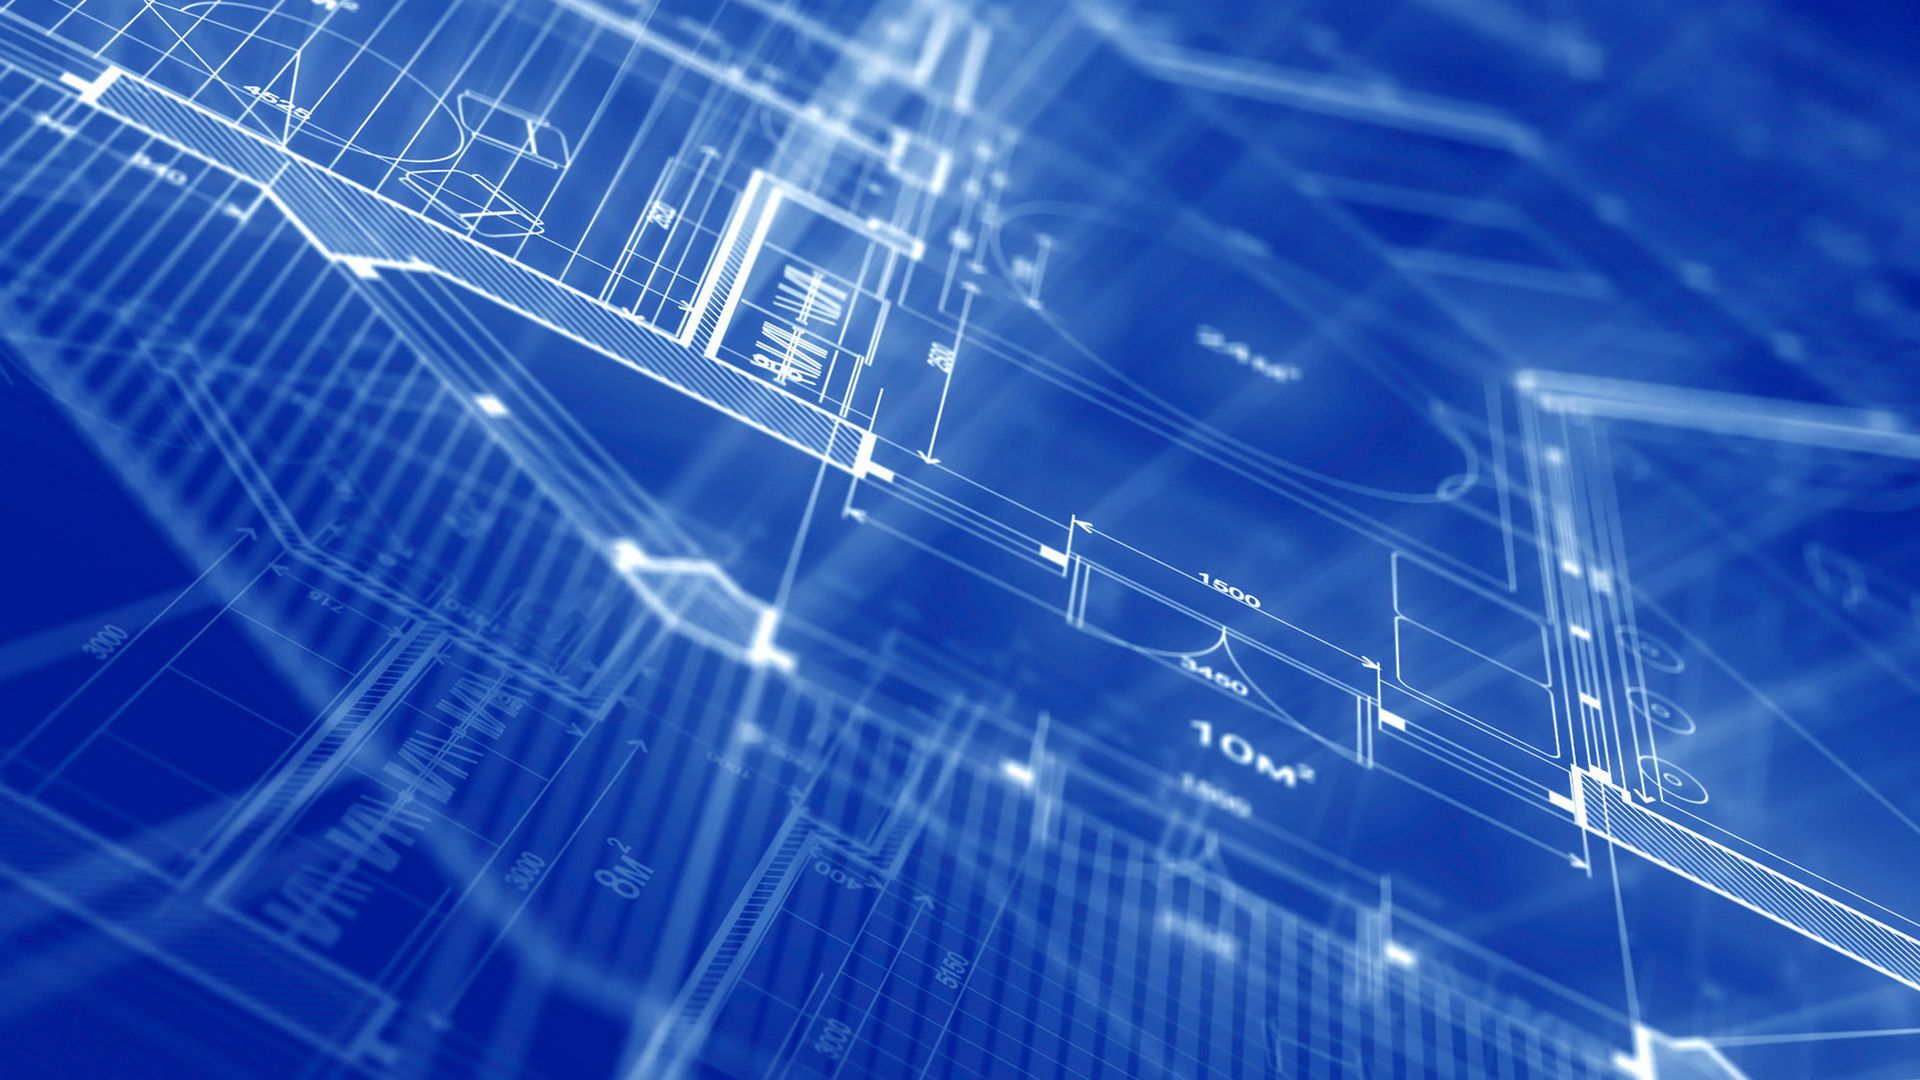 Mep Plan together with Cadblocksfi besides  as well House Floor Plan D besides Ximage   Pagespeed Ic M S Cde. on architectural electrical plan drawings